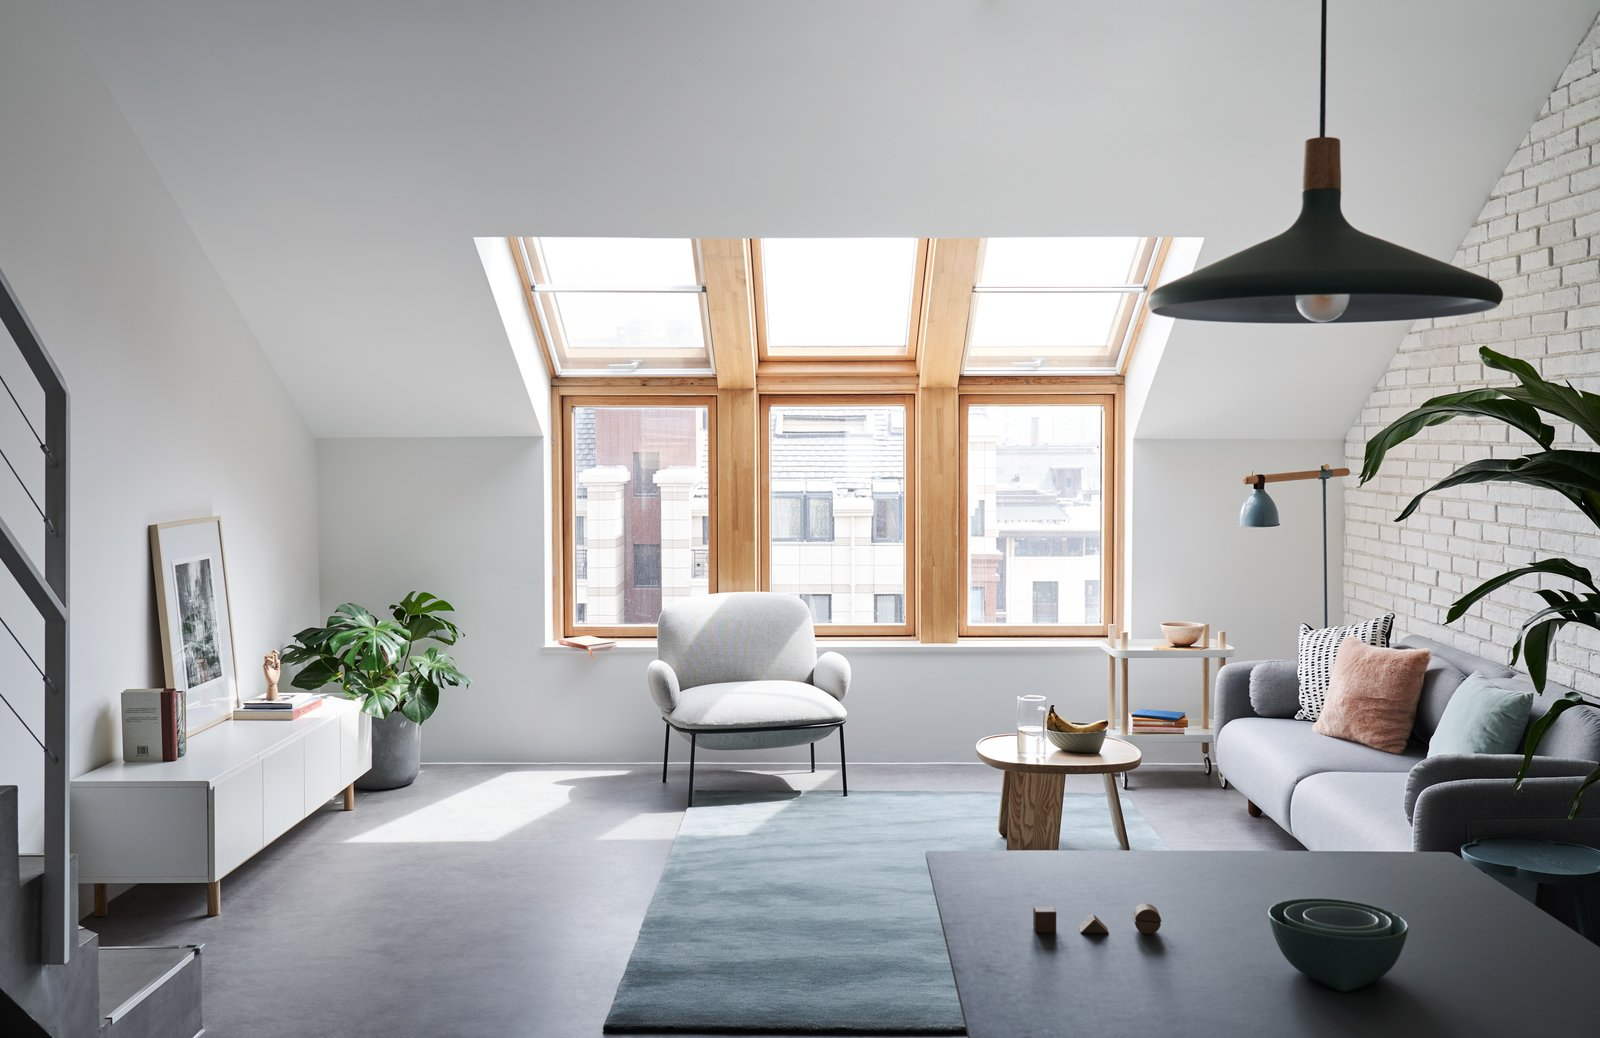 Living Room, Console Tables, Coffee Tables, Floor Lighting, Pendant Lighting, Table, Sofa, Chair, Rug Floor, and Concrete Floor A light gray sofa sits in the living lounge.    Best Photos from A Loft Mezzanine Cleverly Enlarges This Small Beijing Flat